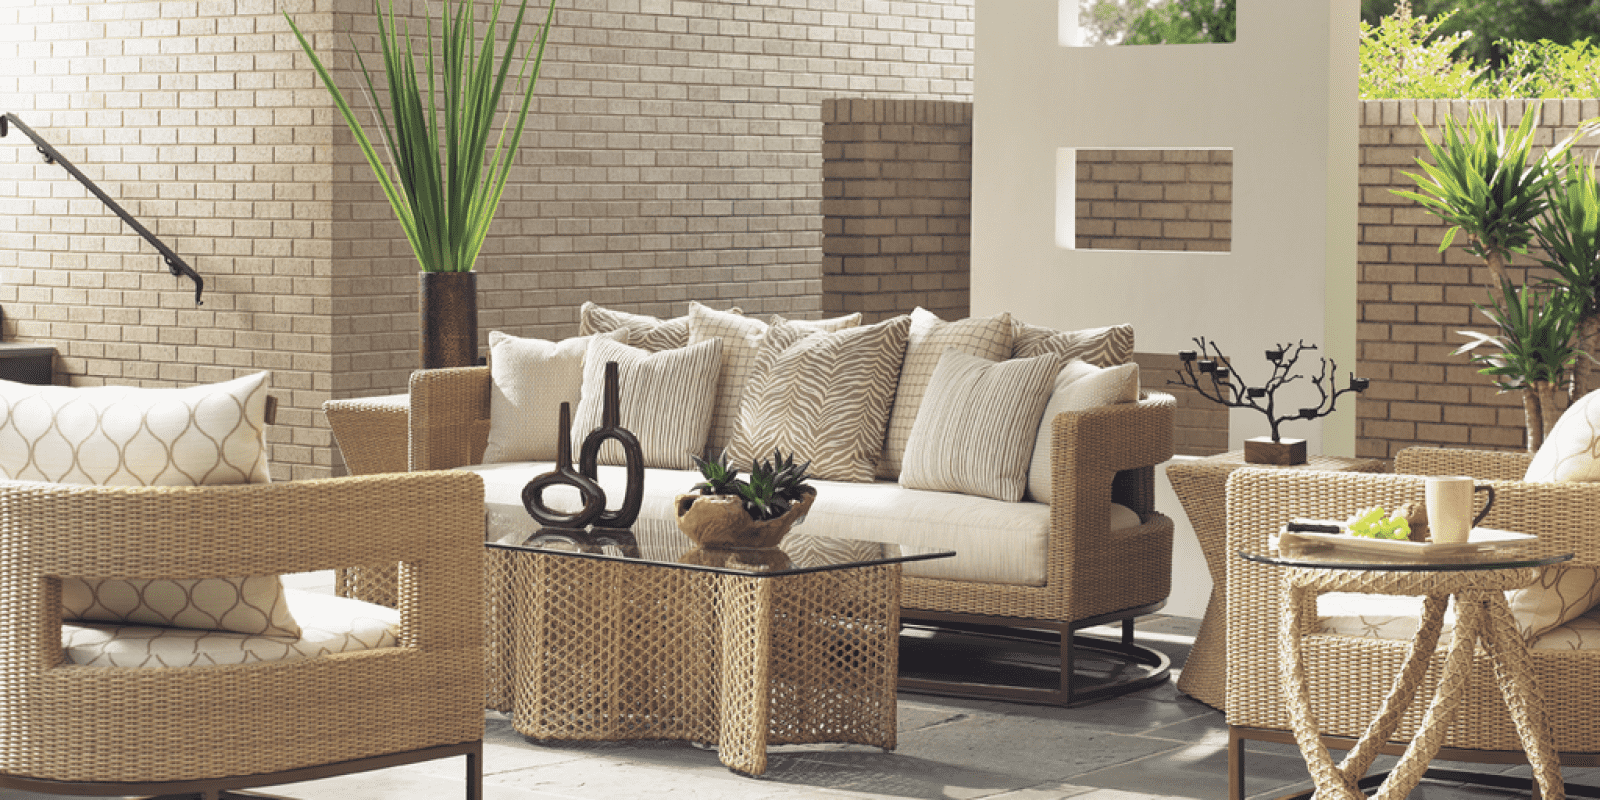 Wicker Deep Seating